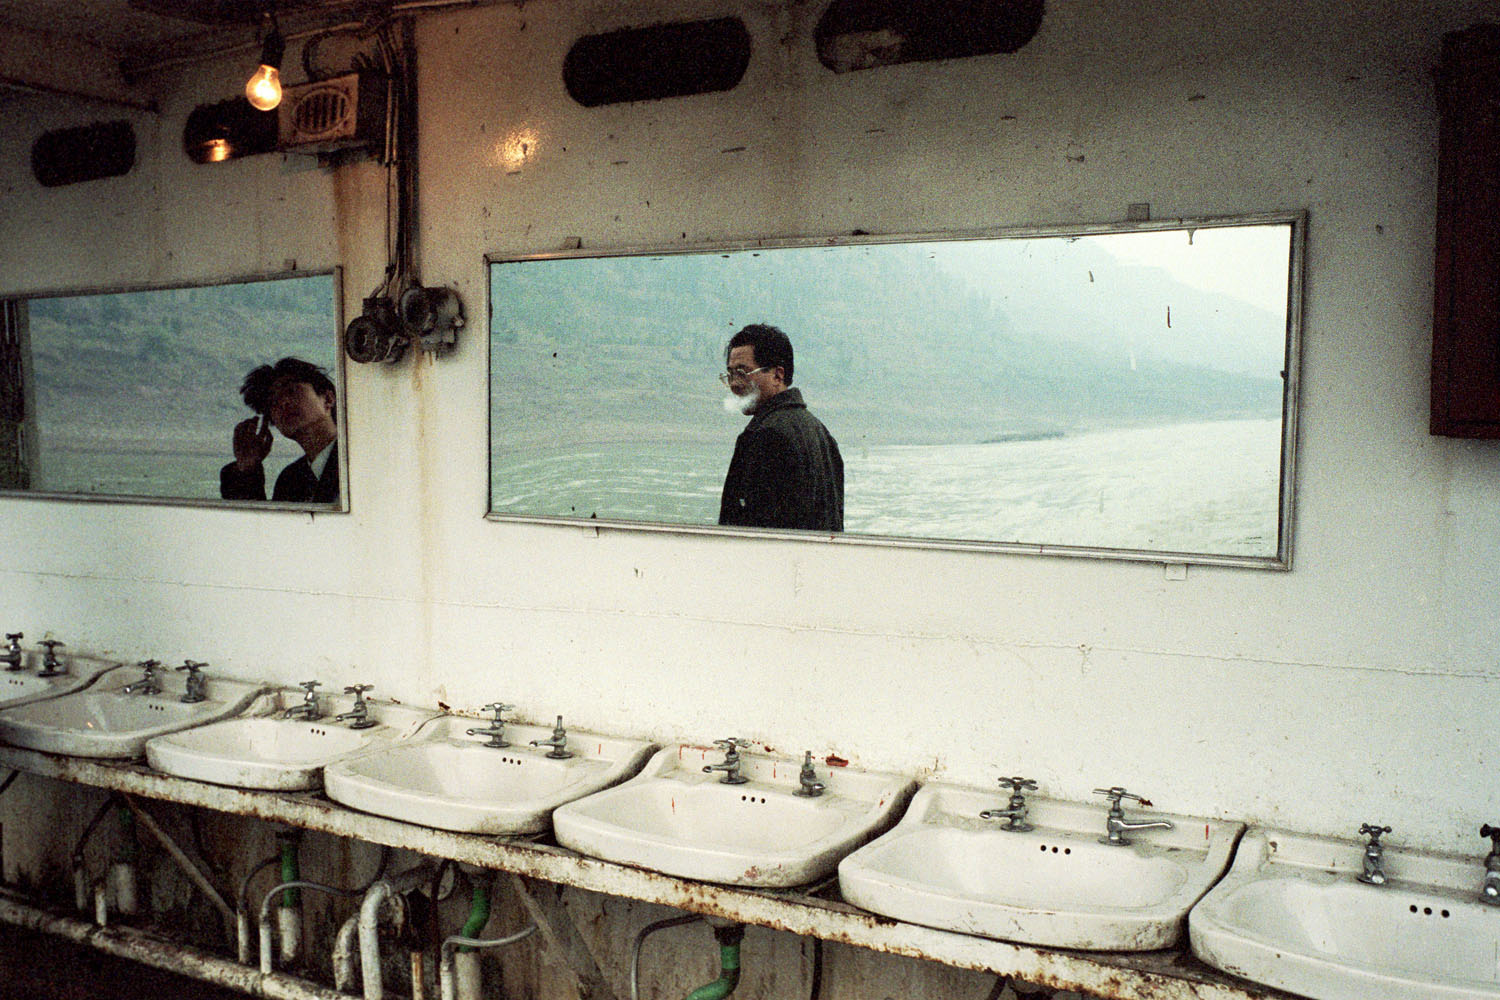 A row of sinks on an old passenger boat on the waters of the Yangtze River. Two individuals are visible in the mirrors above the sinks.